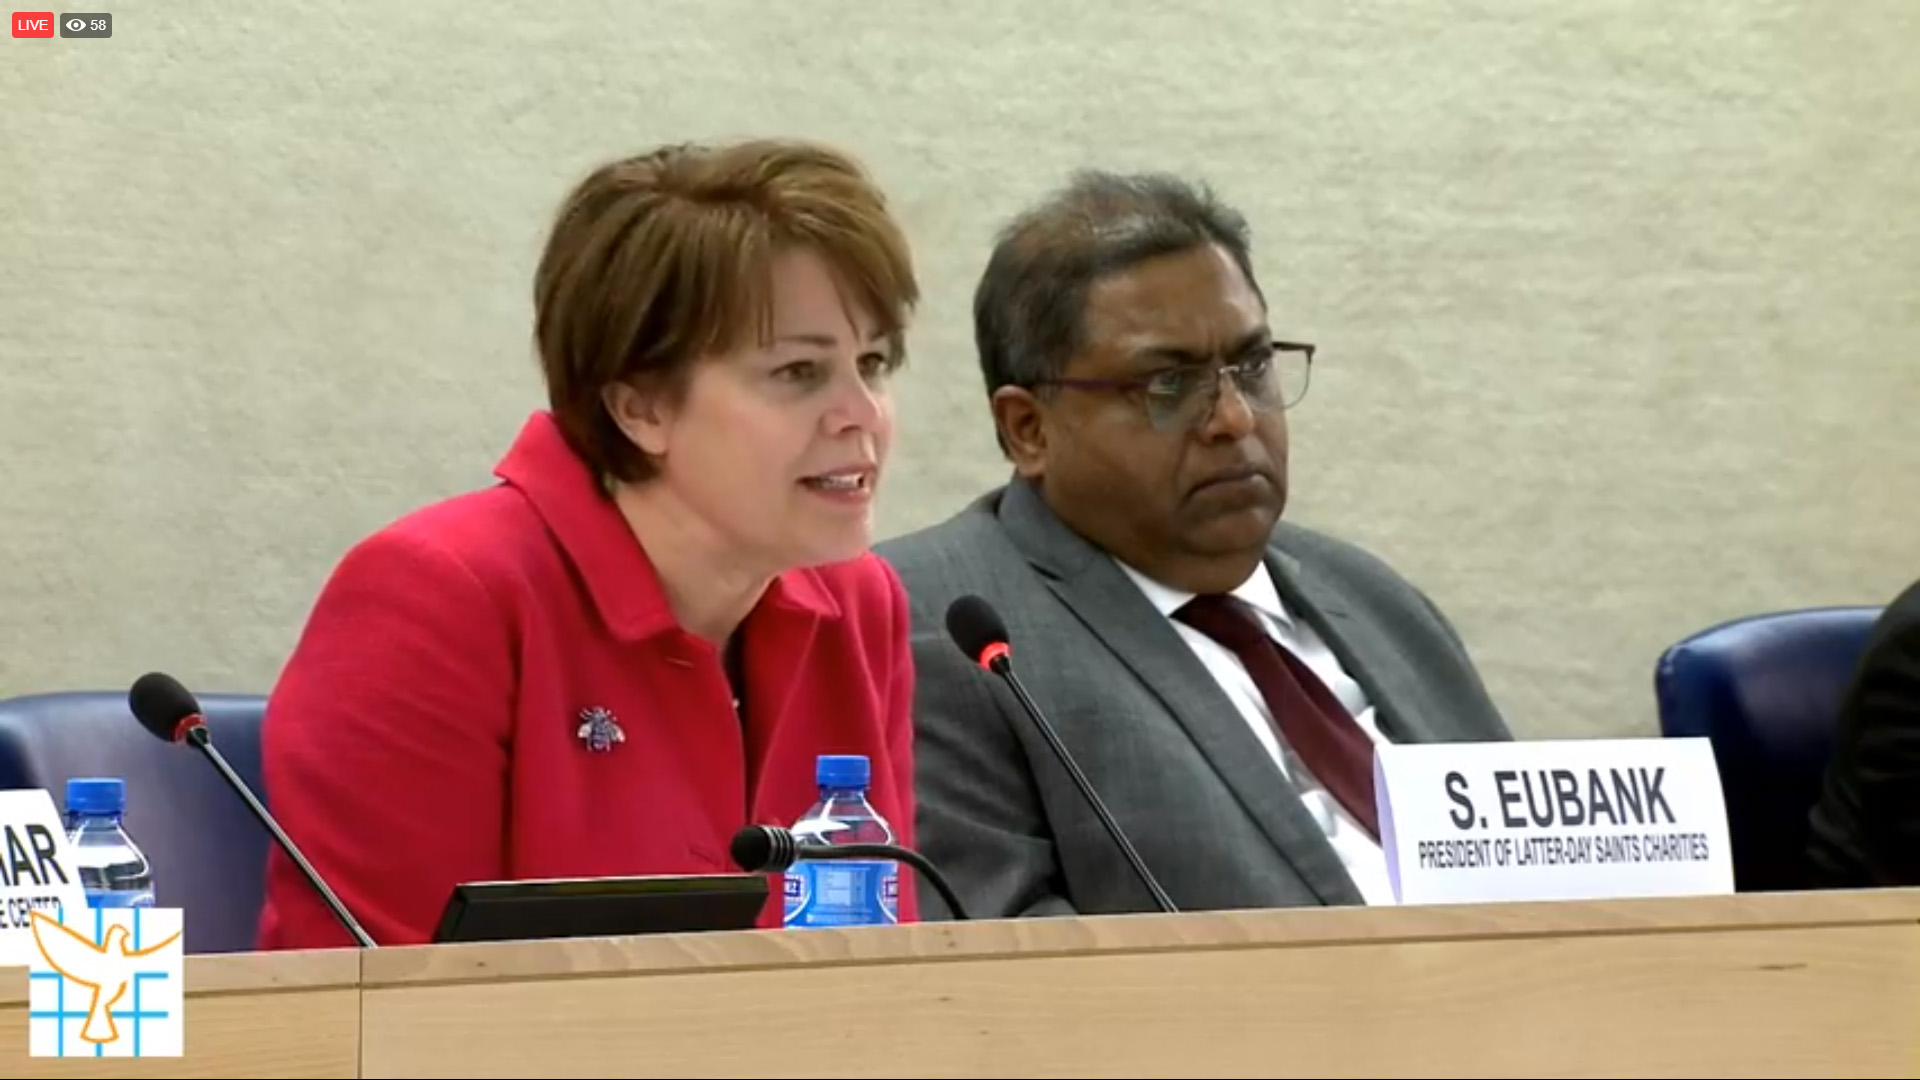 Livestream screenshot of Sister Sharon Eubank, director of LDS Charities and first counselor in the Relief Society general presidency, speaking at the United Nations in Geneva, Switzerland, Monday, April 29, 2019.